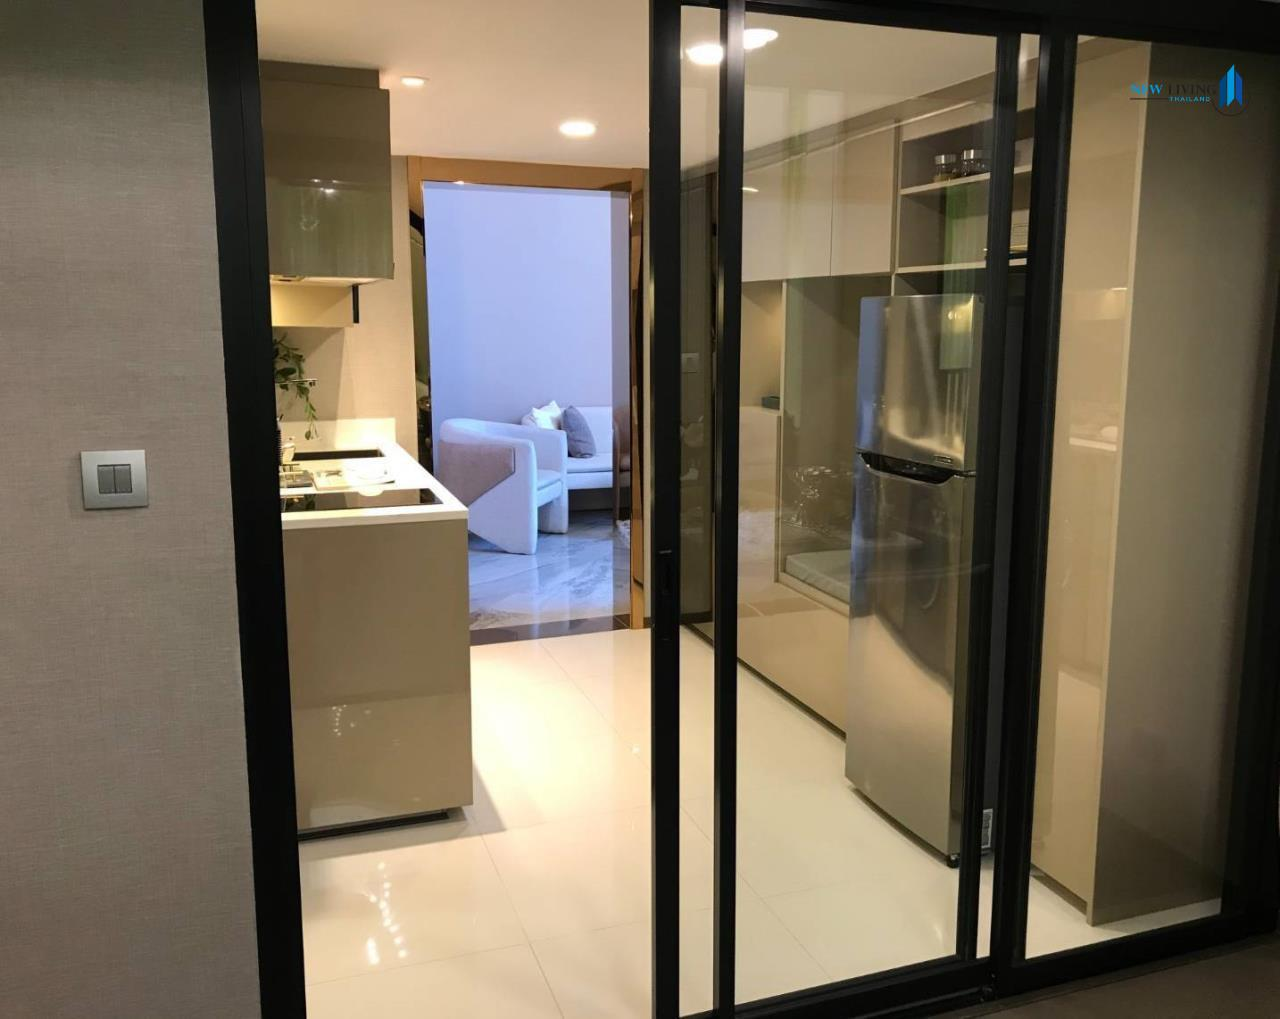 New Living Thailand Agency's Sell Down Payment, Park Origin Ratchathewi ** 1 Deplex 34 sq.m. high floor near BTS Ratchathewi 7